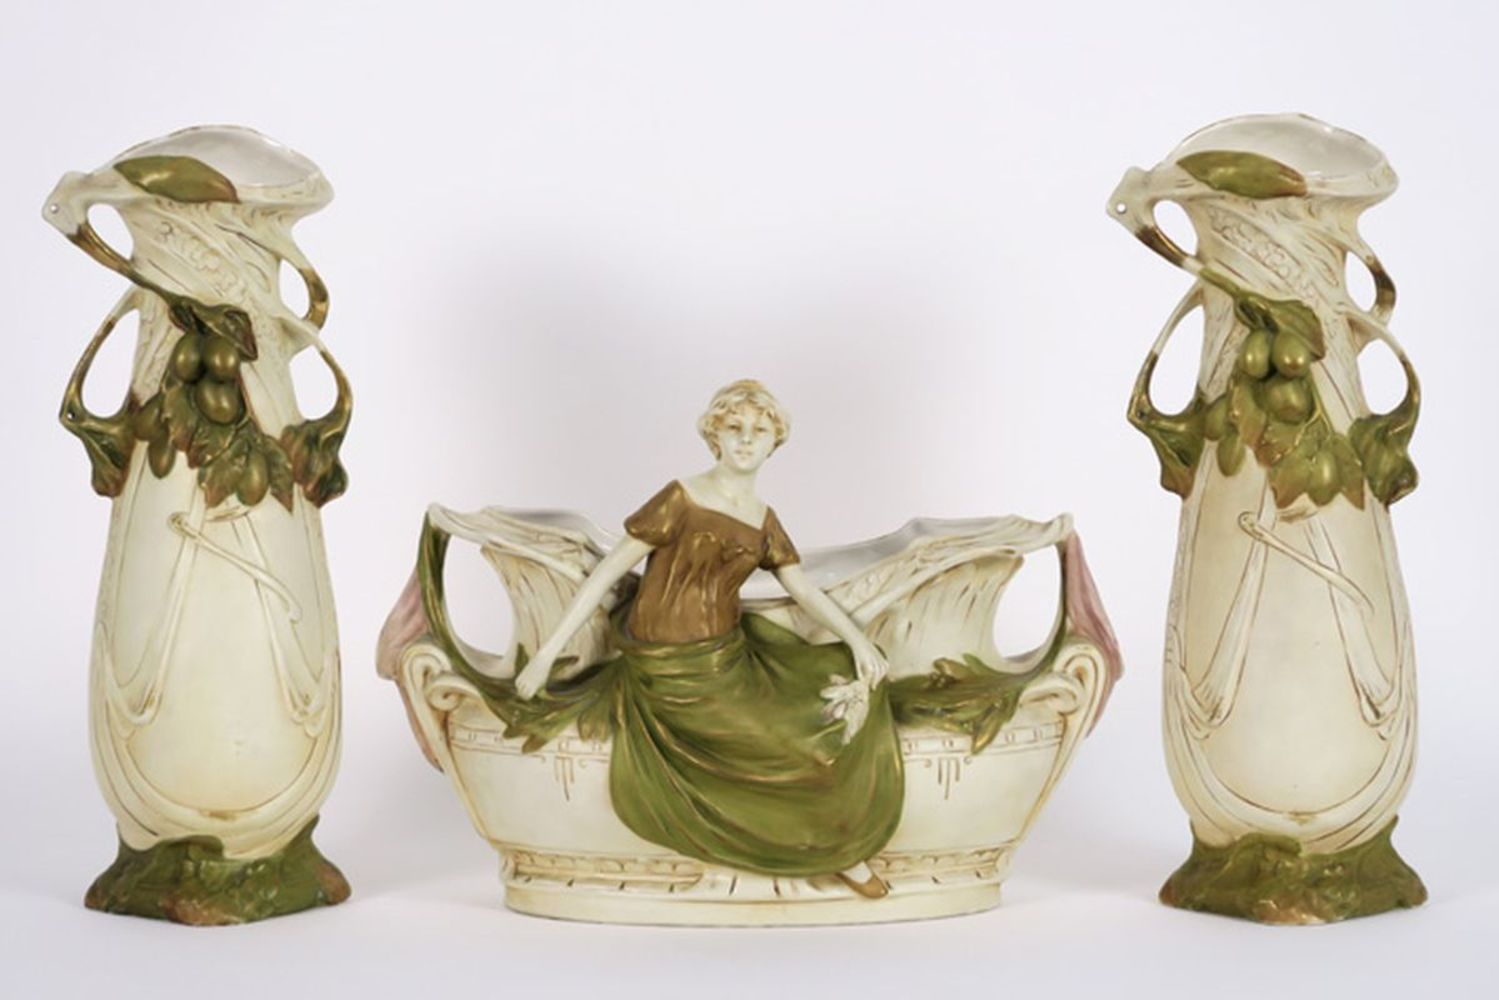 Art and Decorative Arts of the 20th century (Antwerpen)